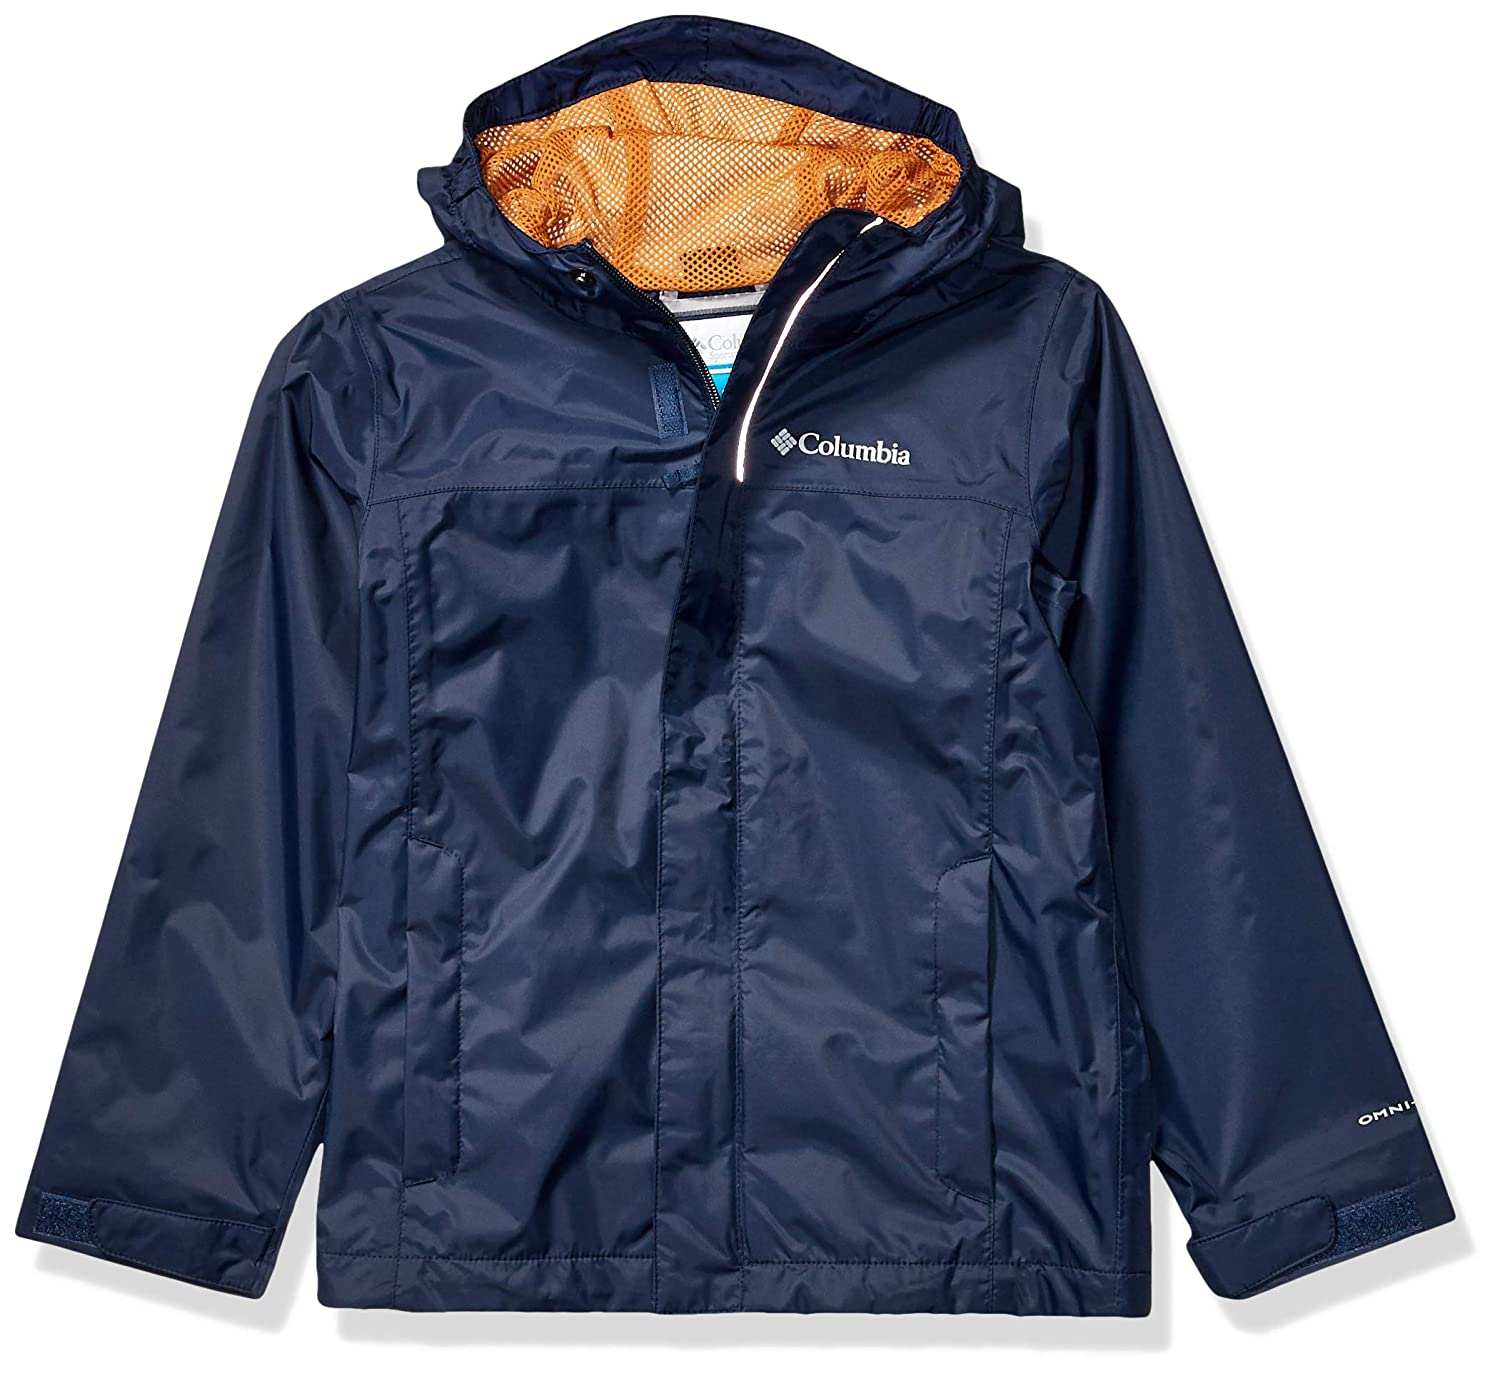 Columbia Boys Watertight Jacket Waterproof and Breathable